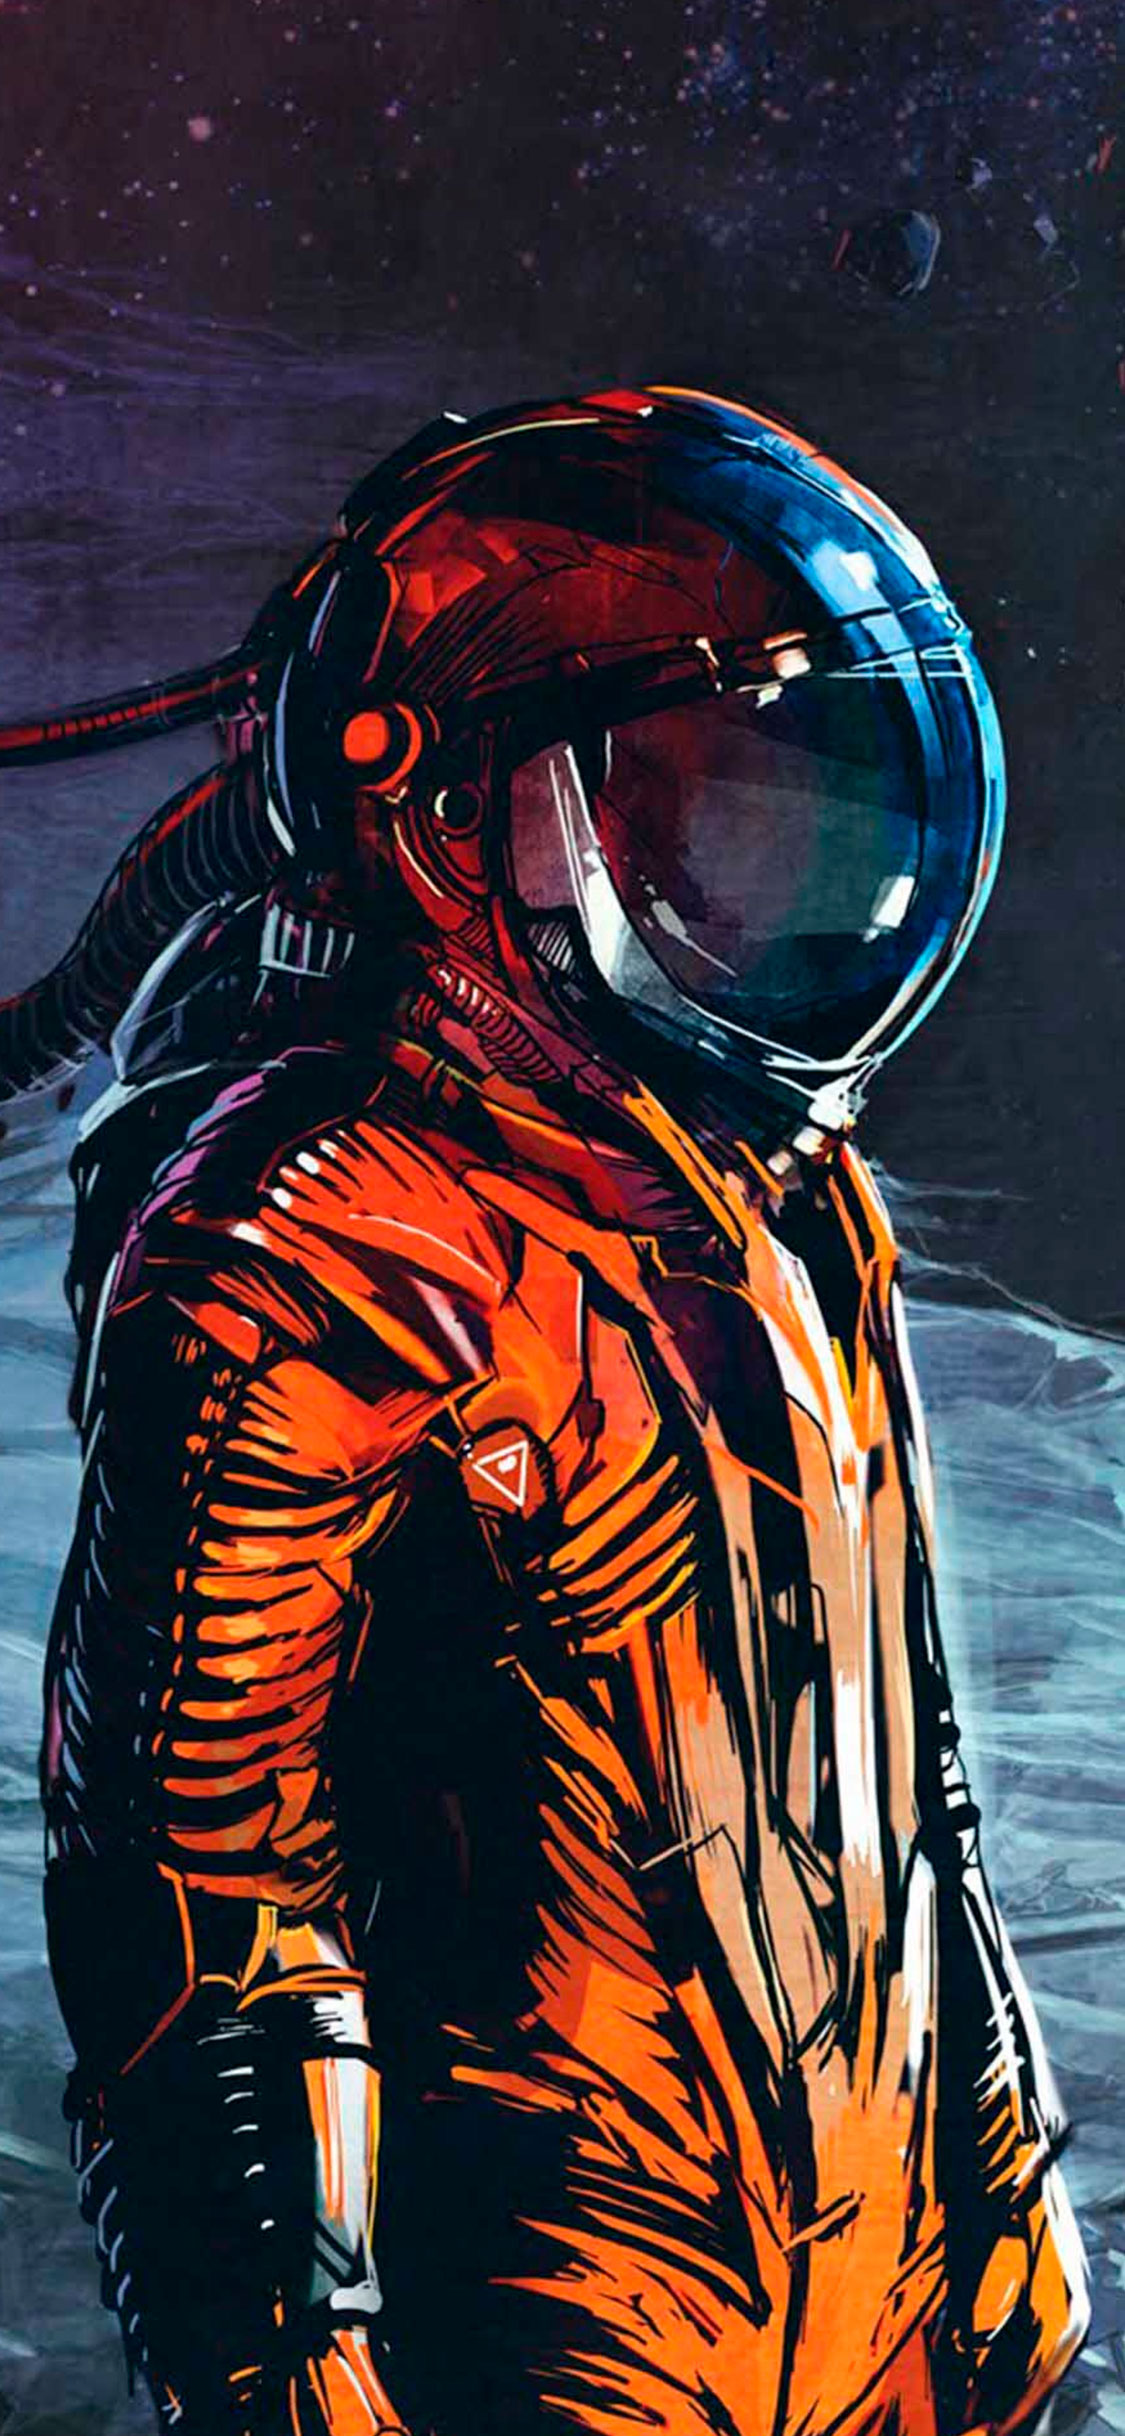 Astronaut Wallpaper For Iphone 11 Pro Max X 8 7 6